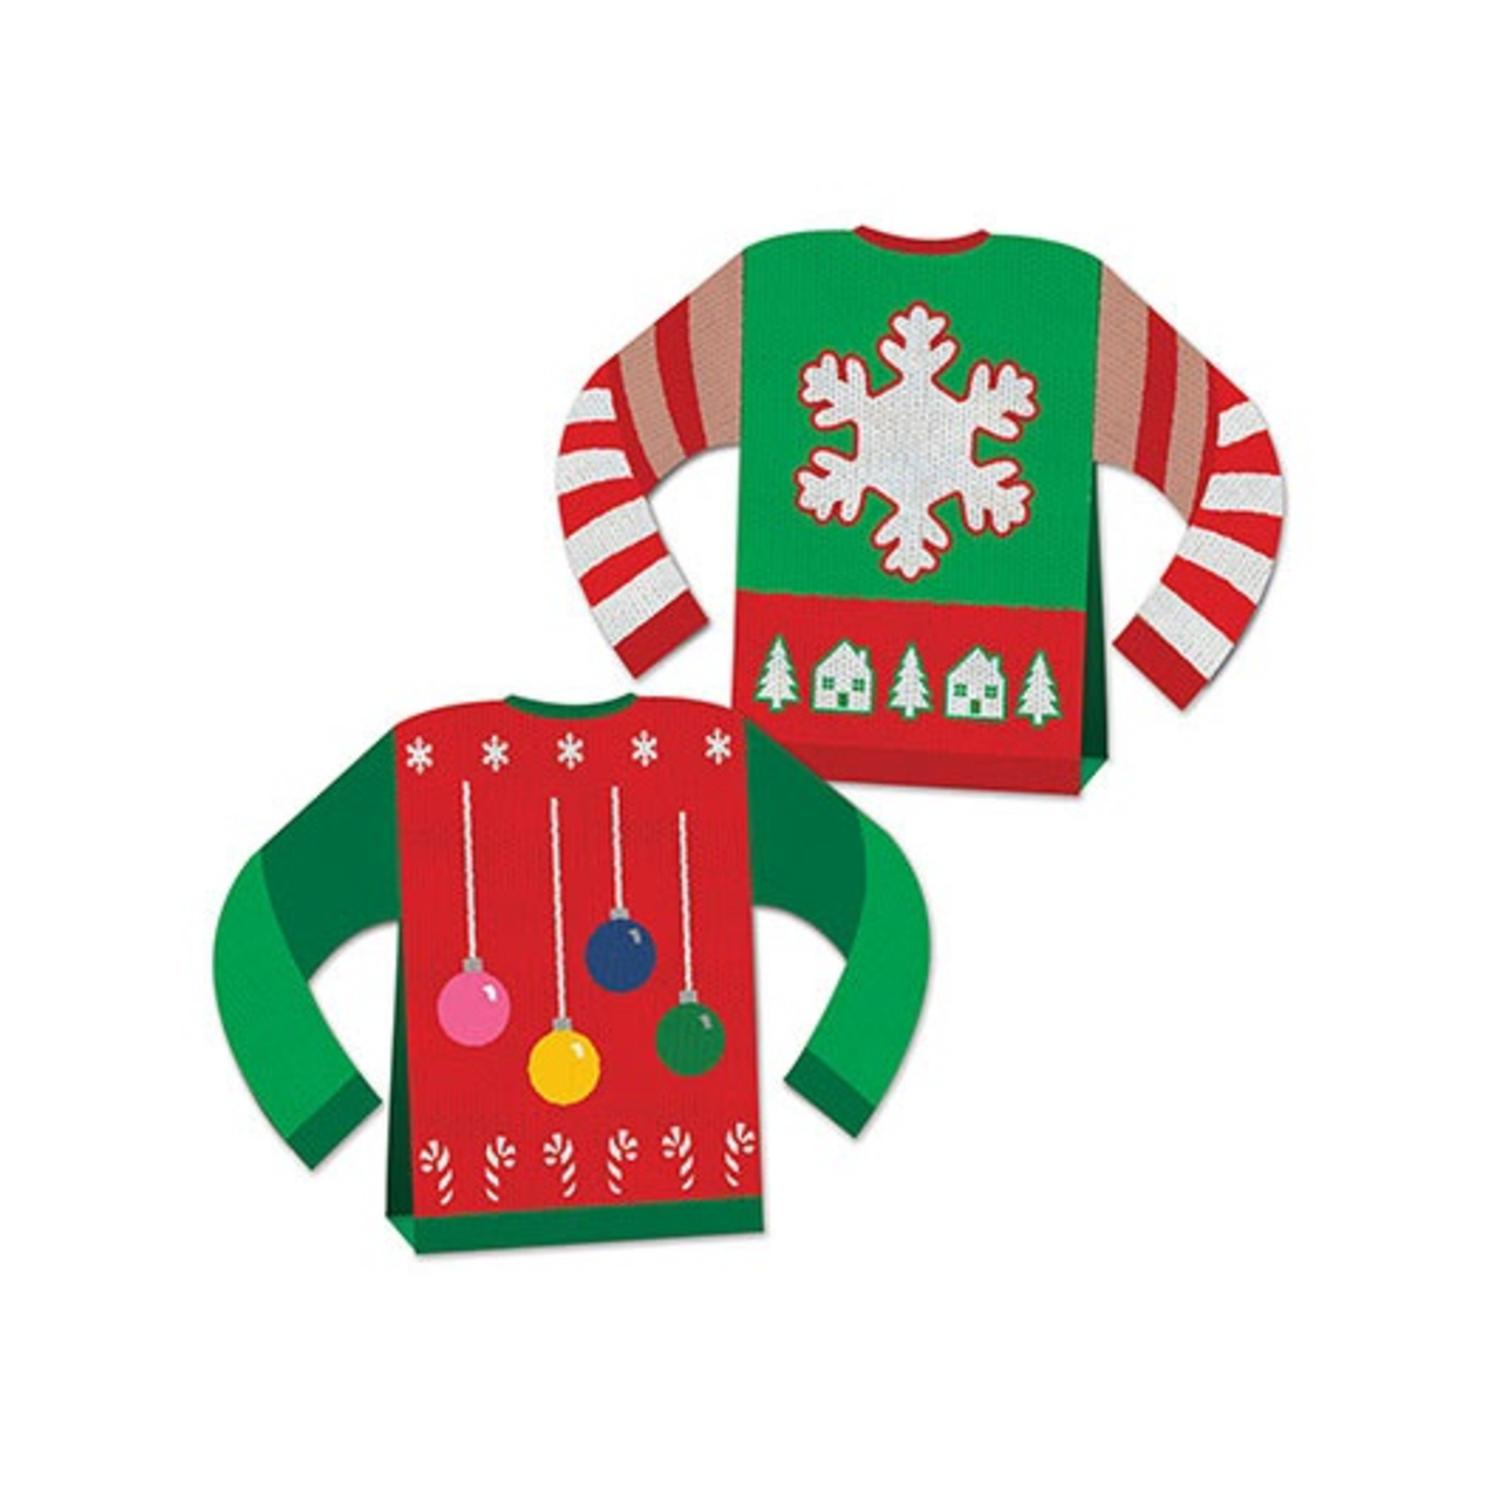 Pack of 12 3-D Ugly Sweater Centerpiece Christmas Table Decorations 8""